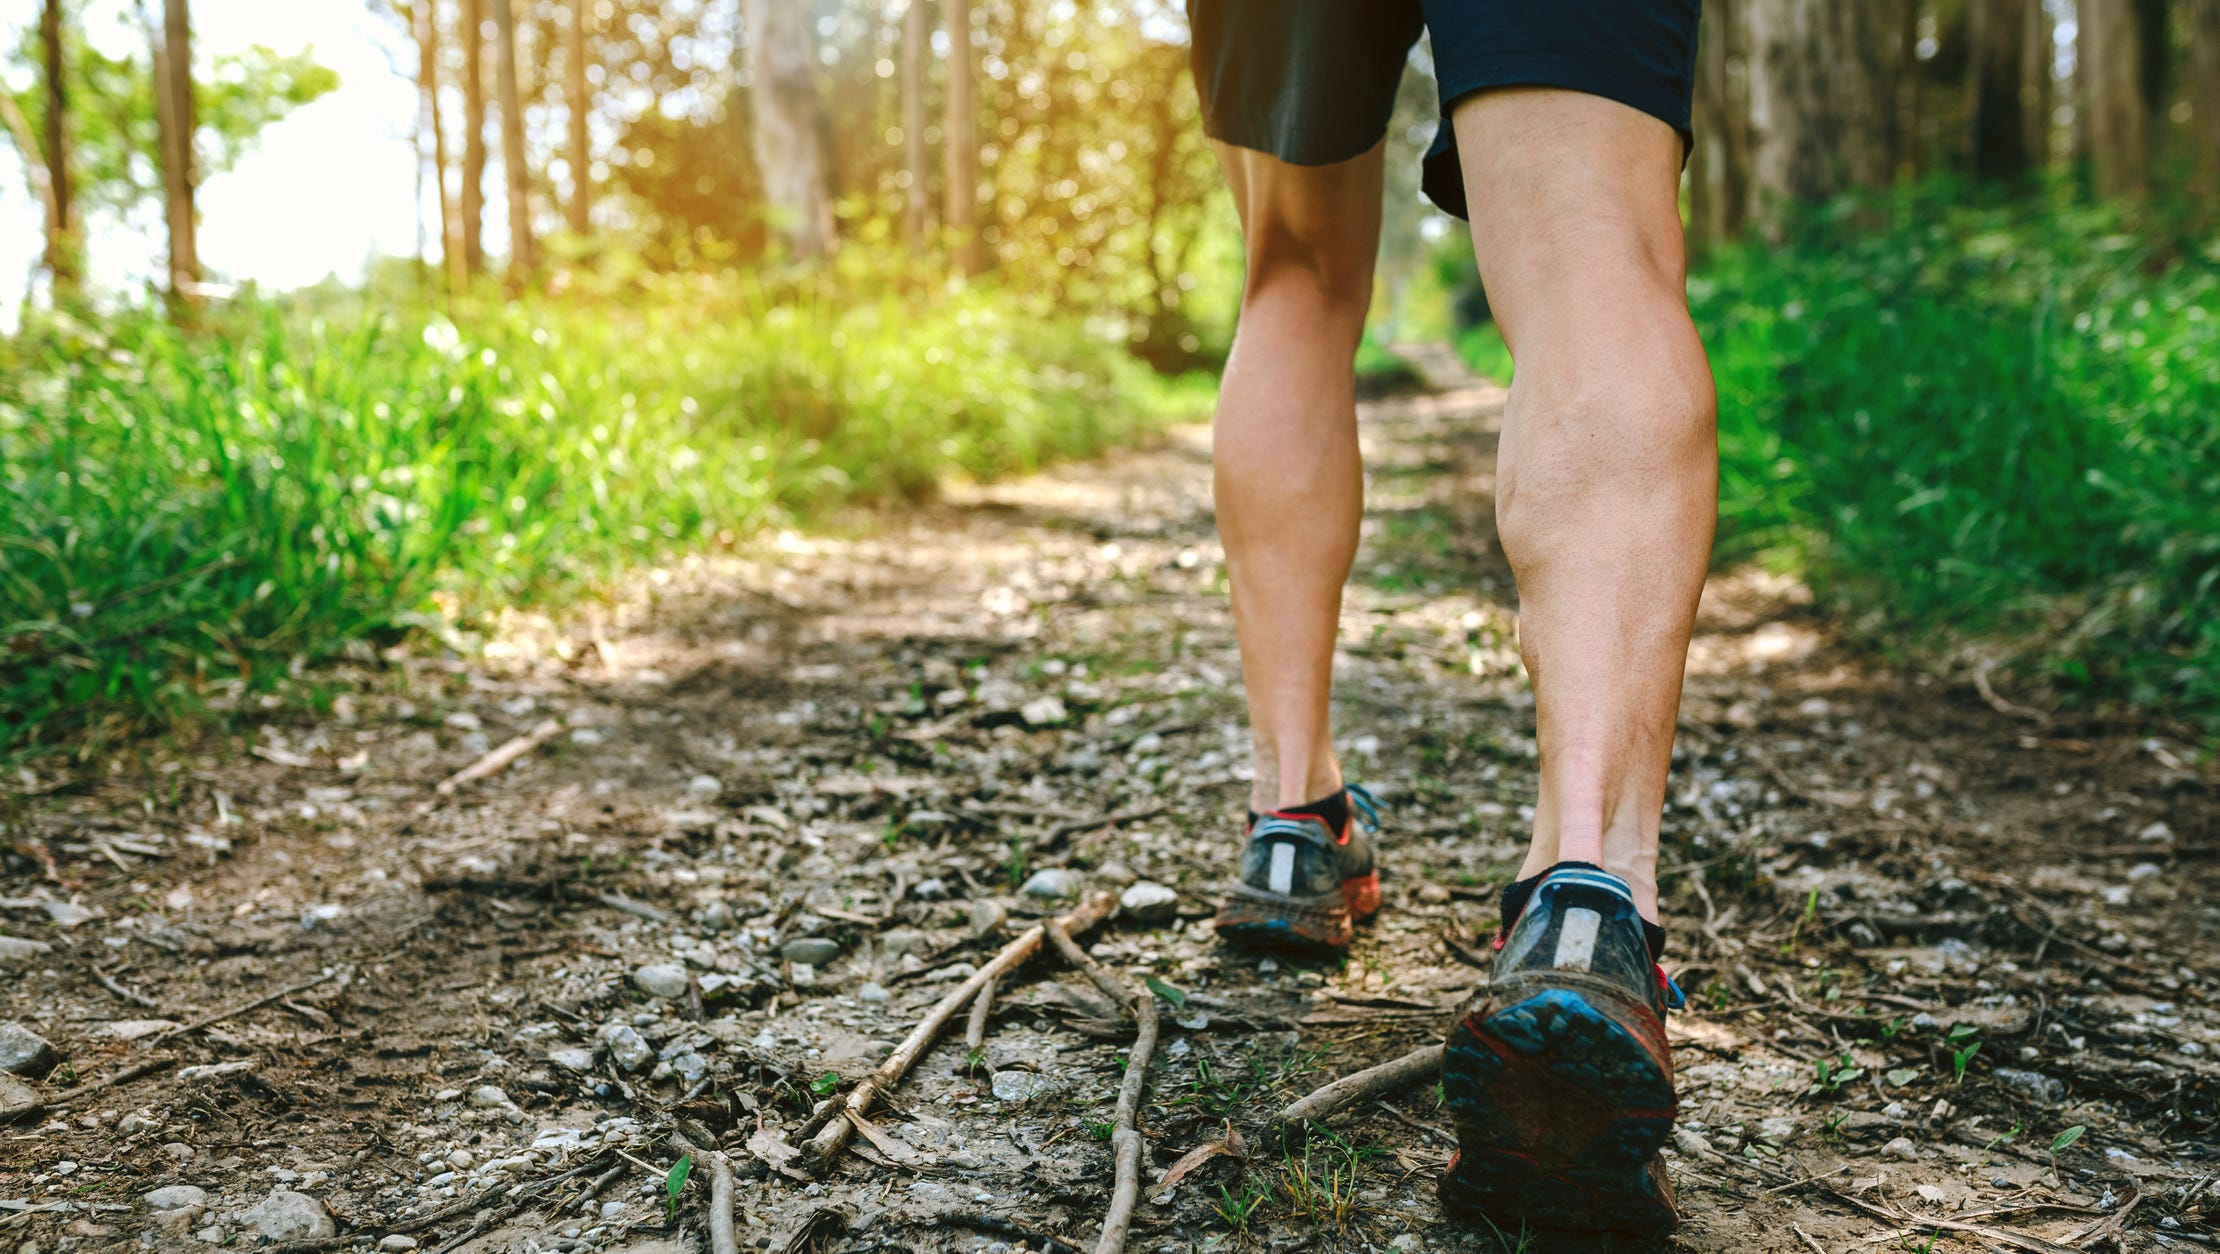 Being more conscious of your stride, your muscle strength and the surface you train on could lower your risk for a running-related injury